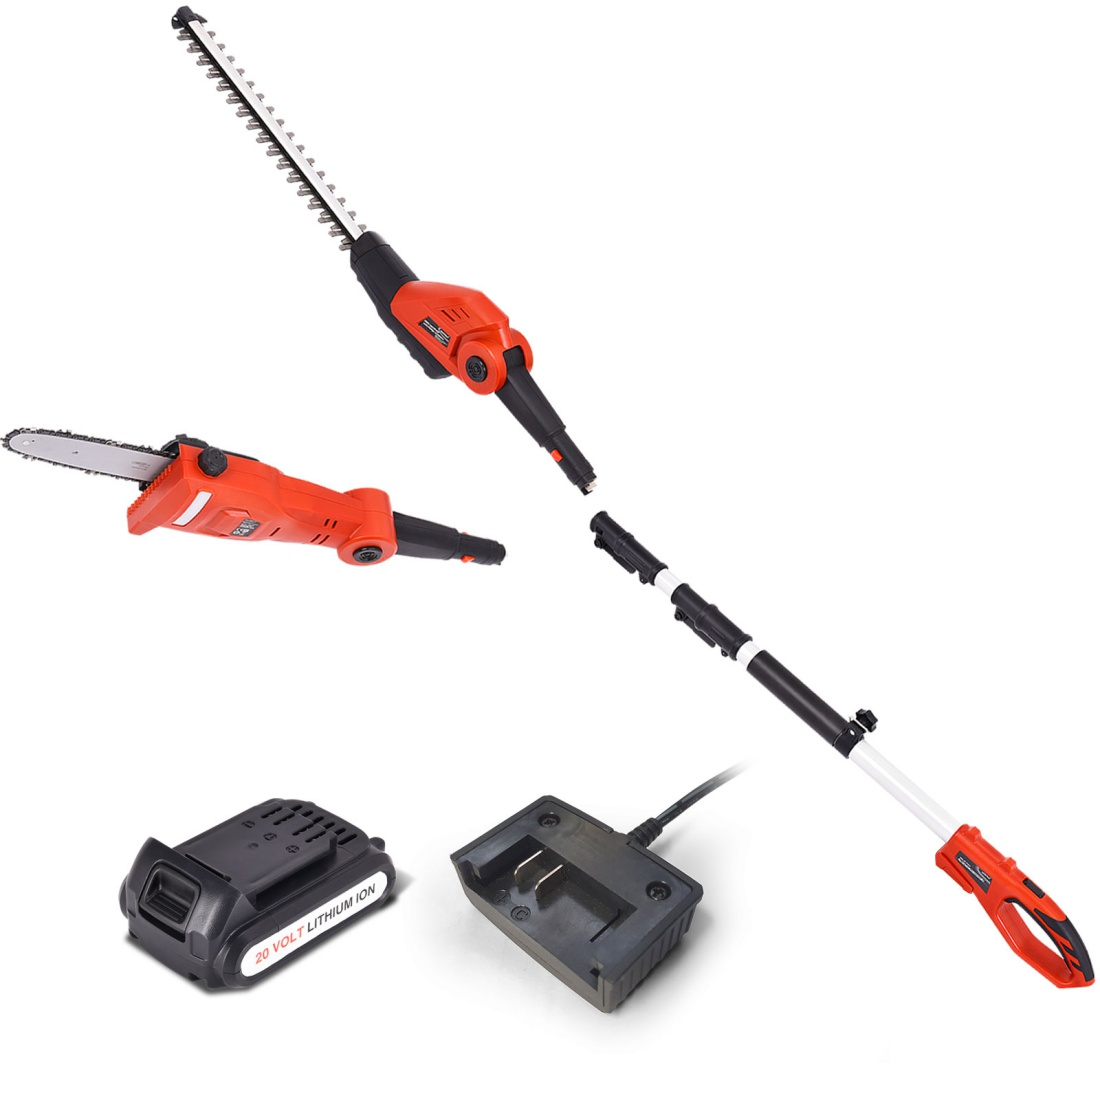 Matrix 20V Pole for Graden Pole Chainsaw Hedg Trimmer Electric Garden Tool 2in1